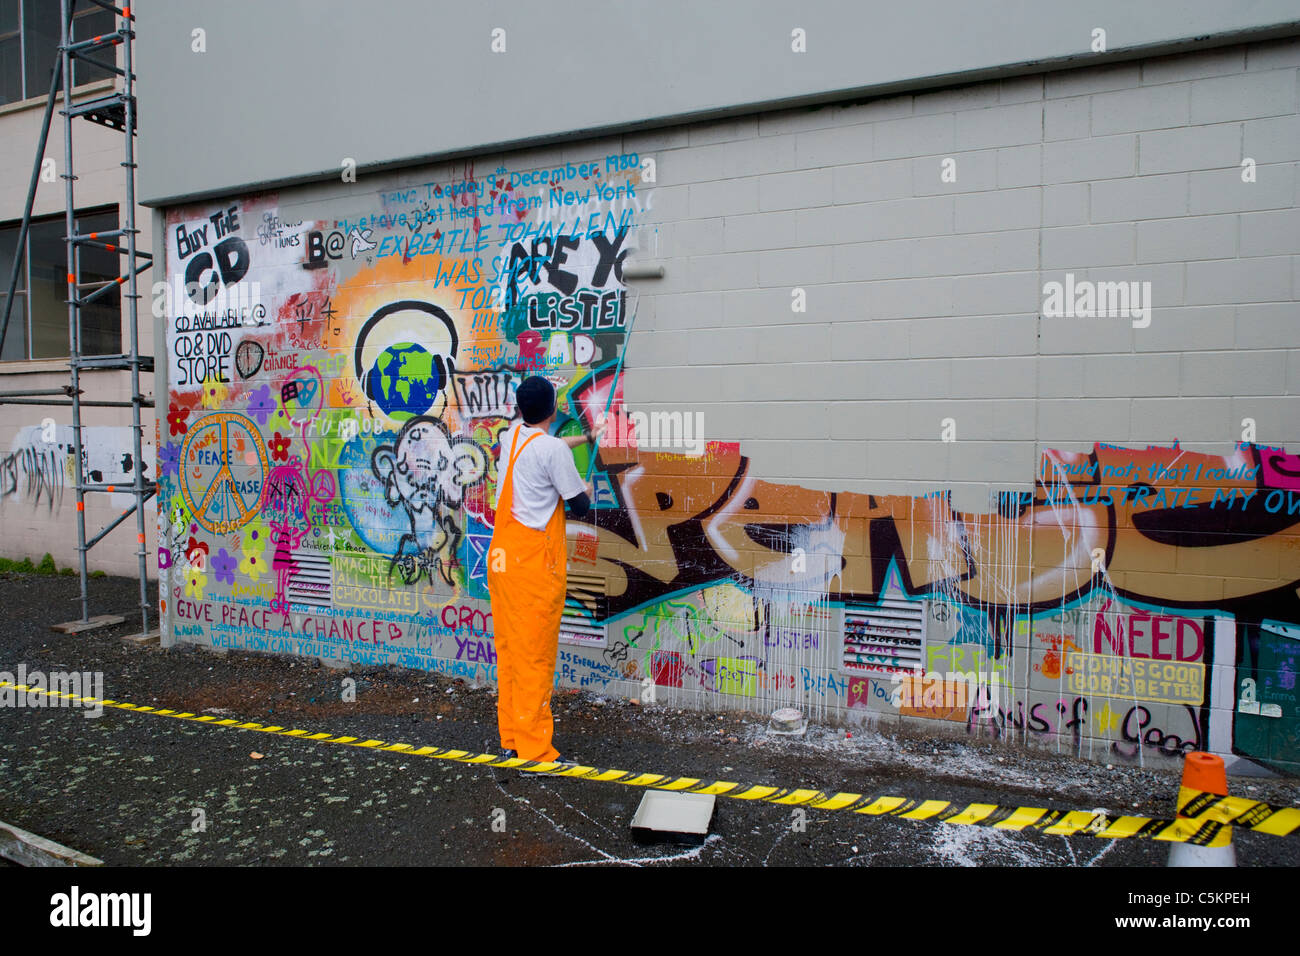 Graffiti wall painting - Man Painting Over Graffiti On A Wall With A Paint Roller